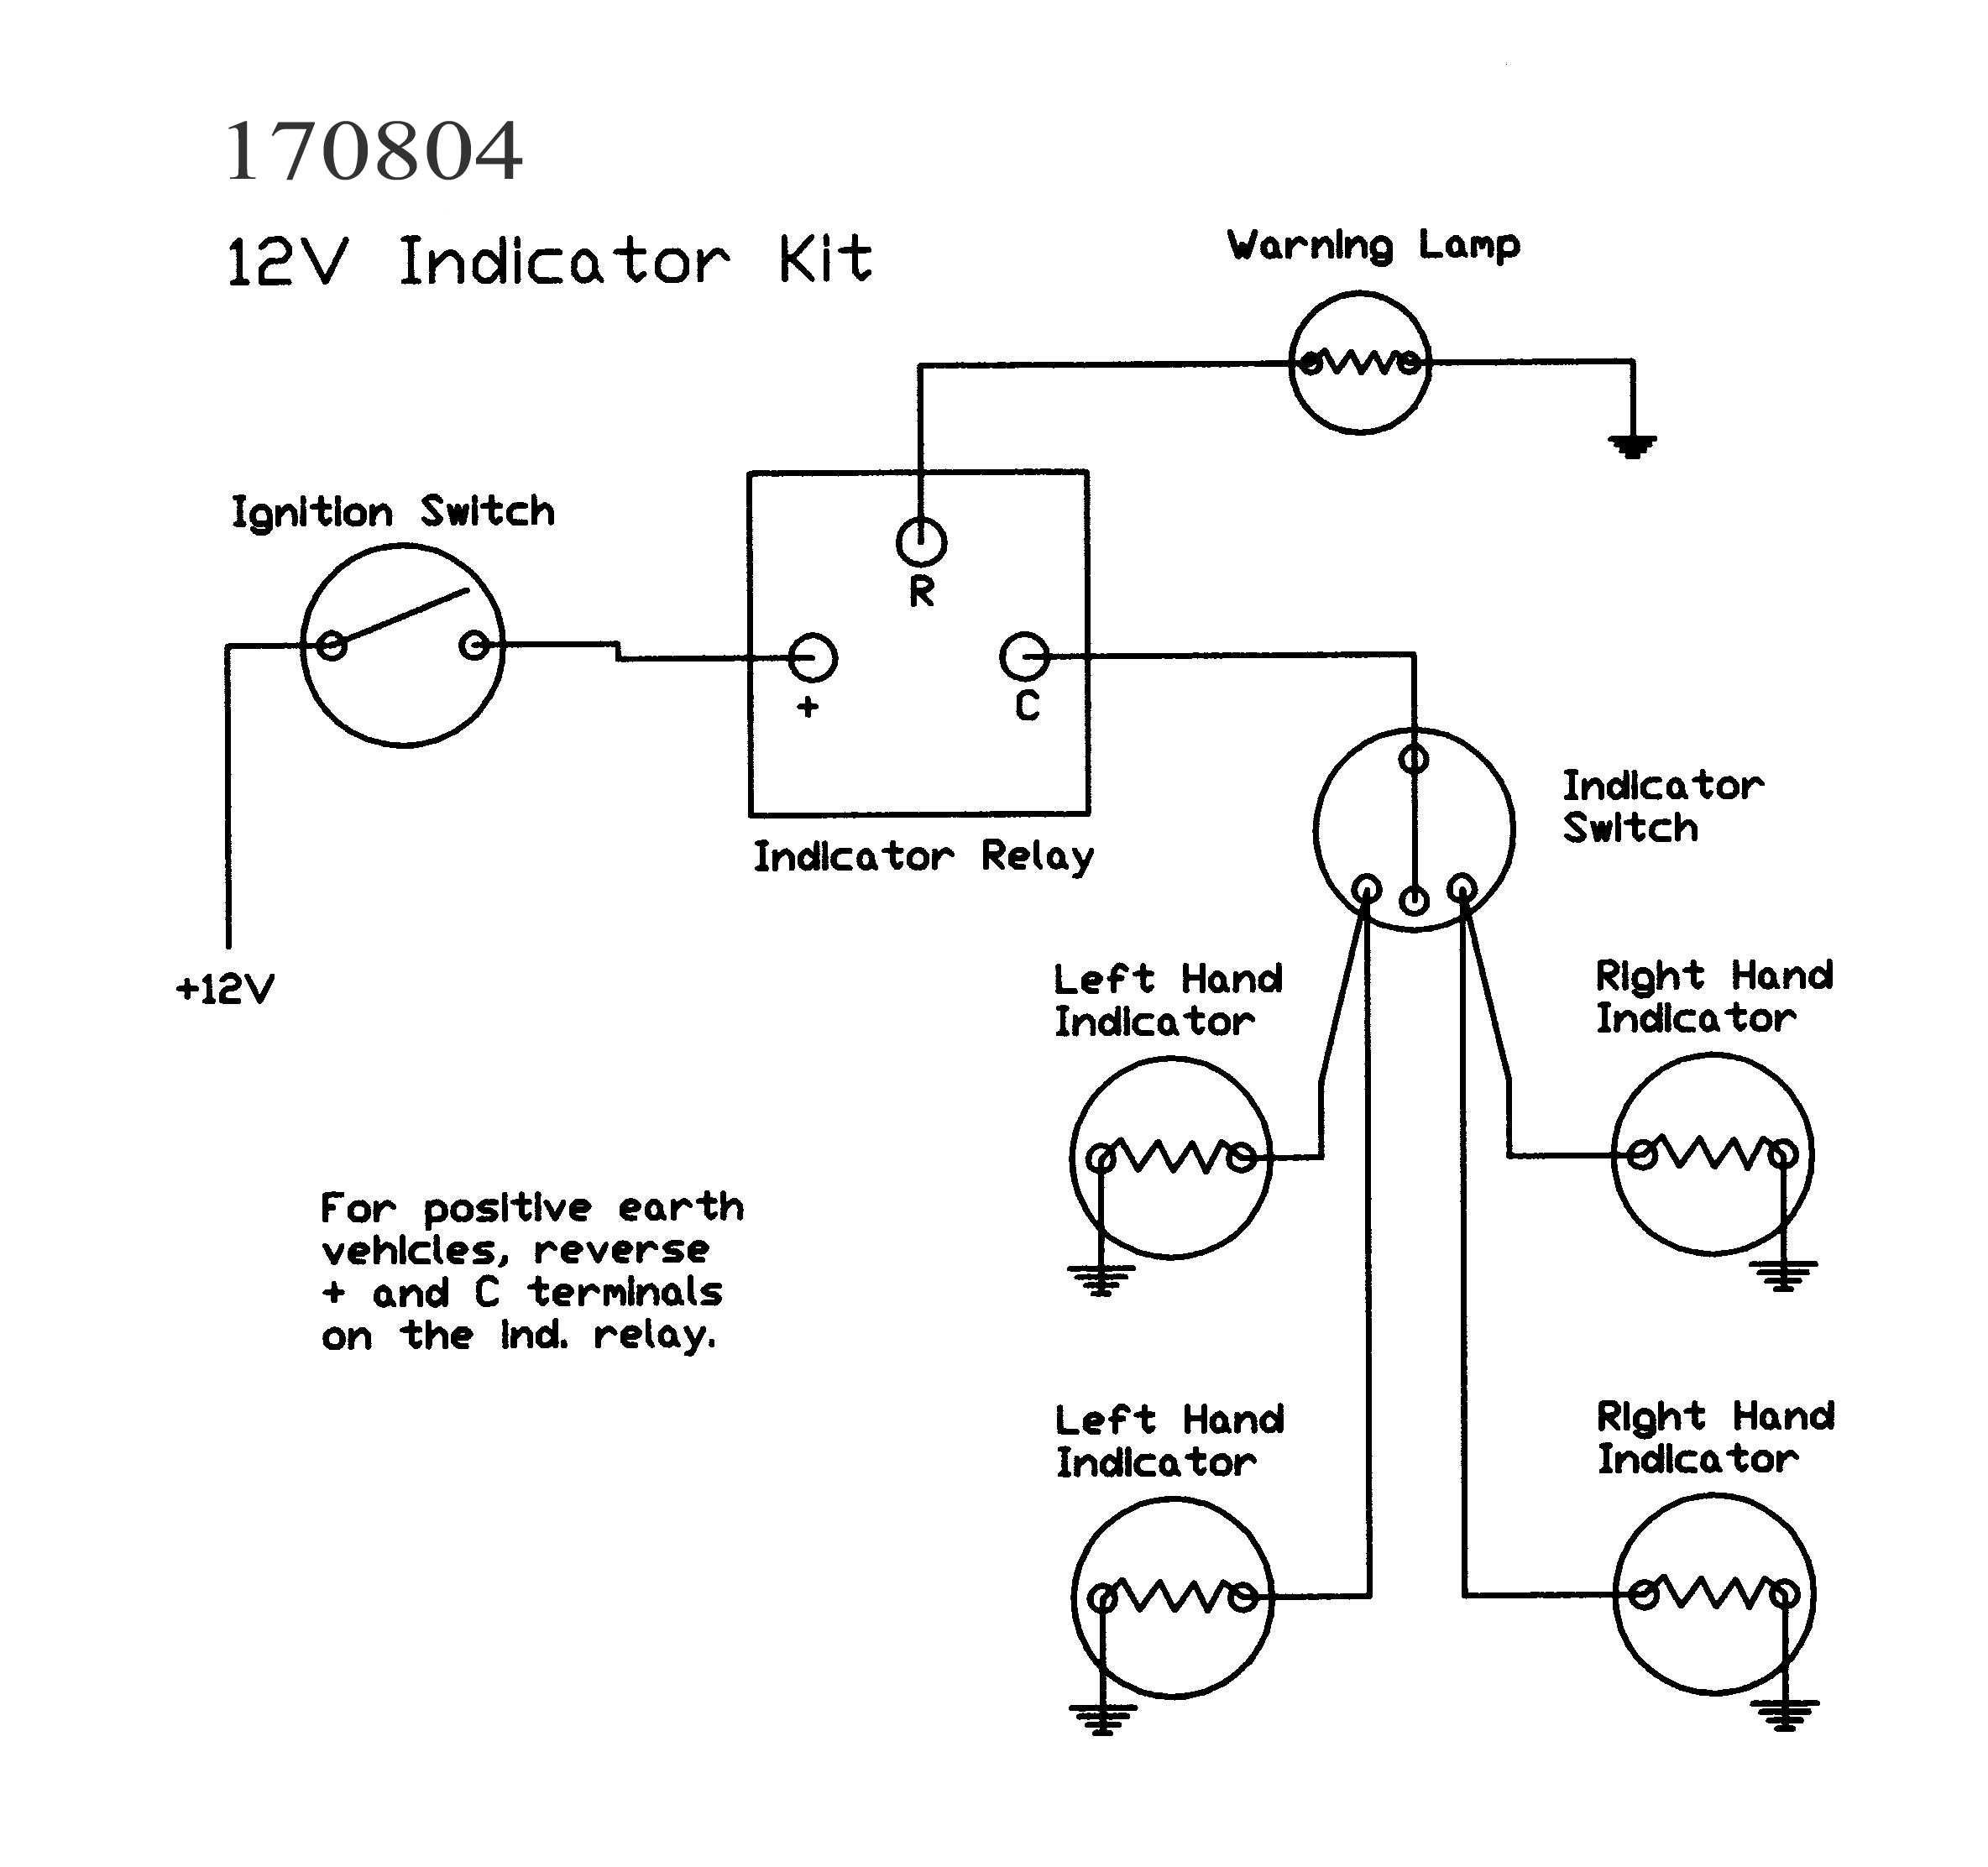 E Stop Wiring Diagram Auto Electrical Dayton Relay 1 5yr13n Indicator Kits Without Lamps